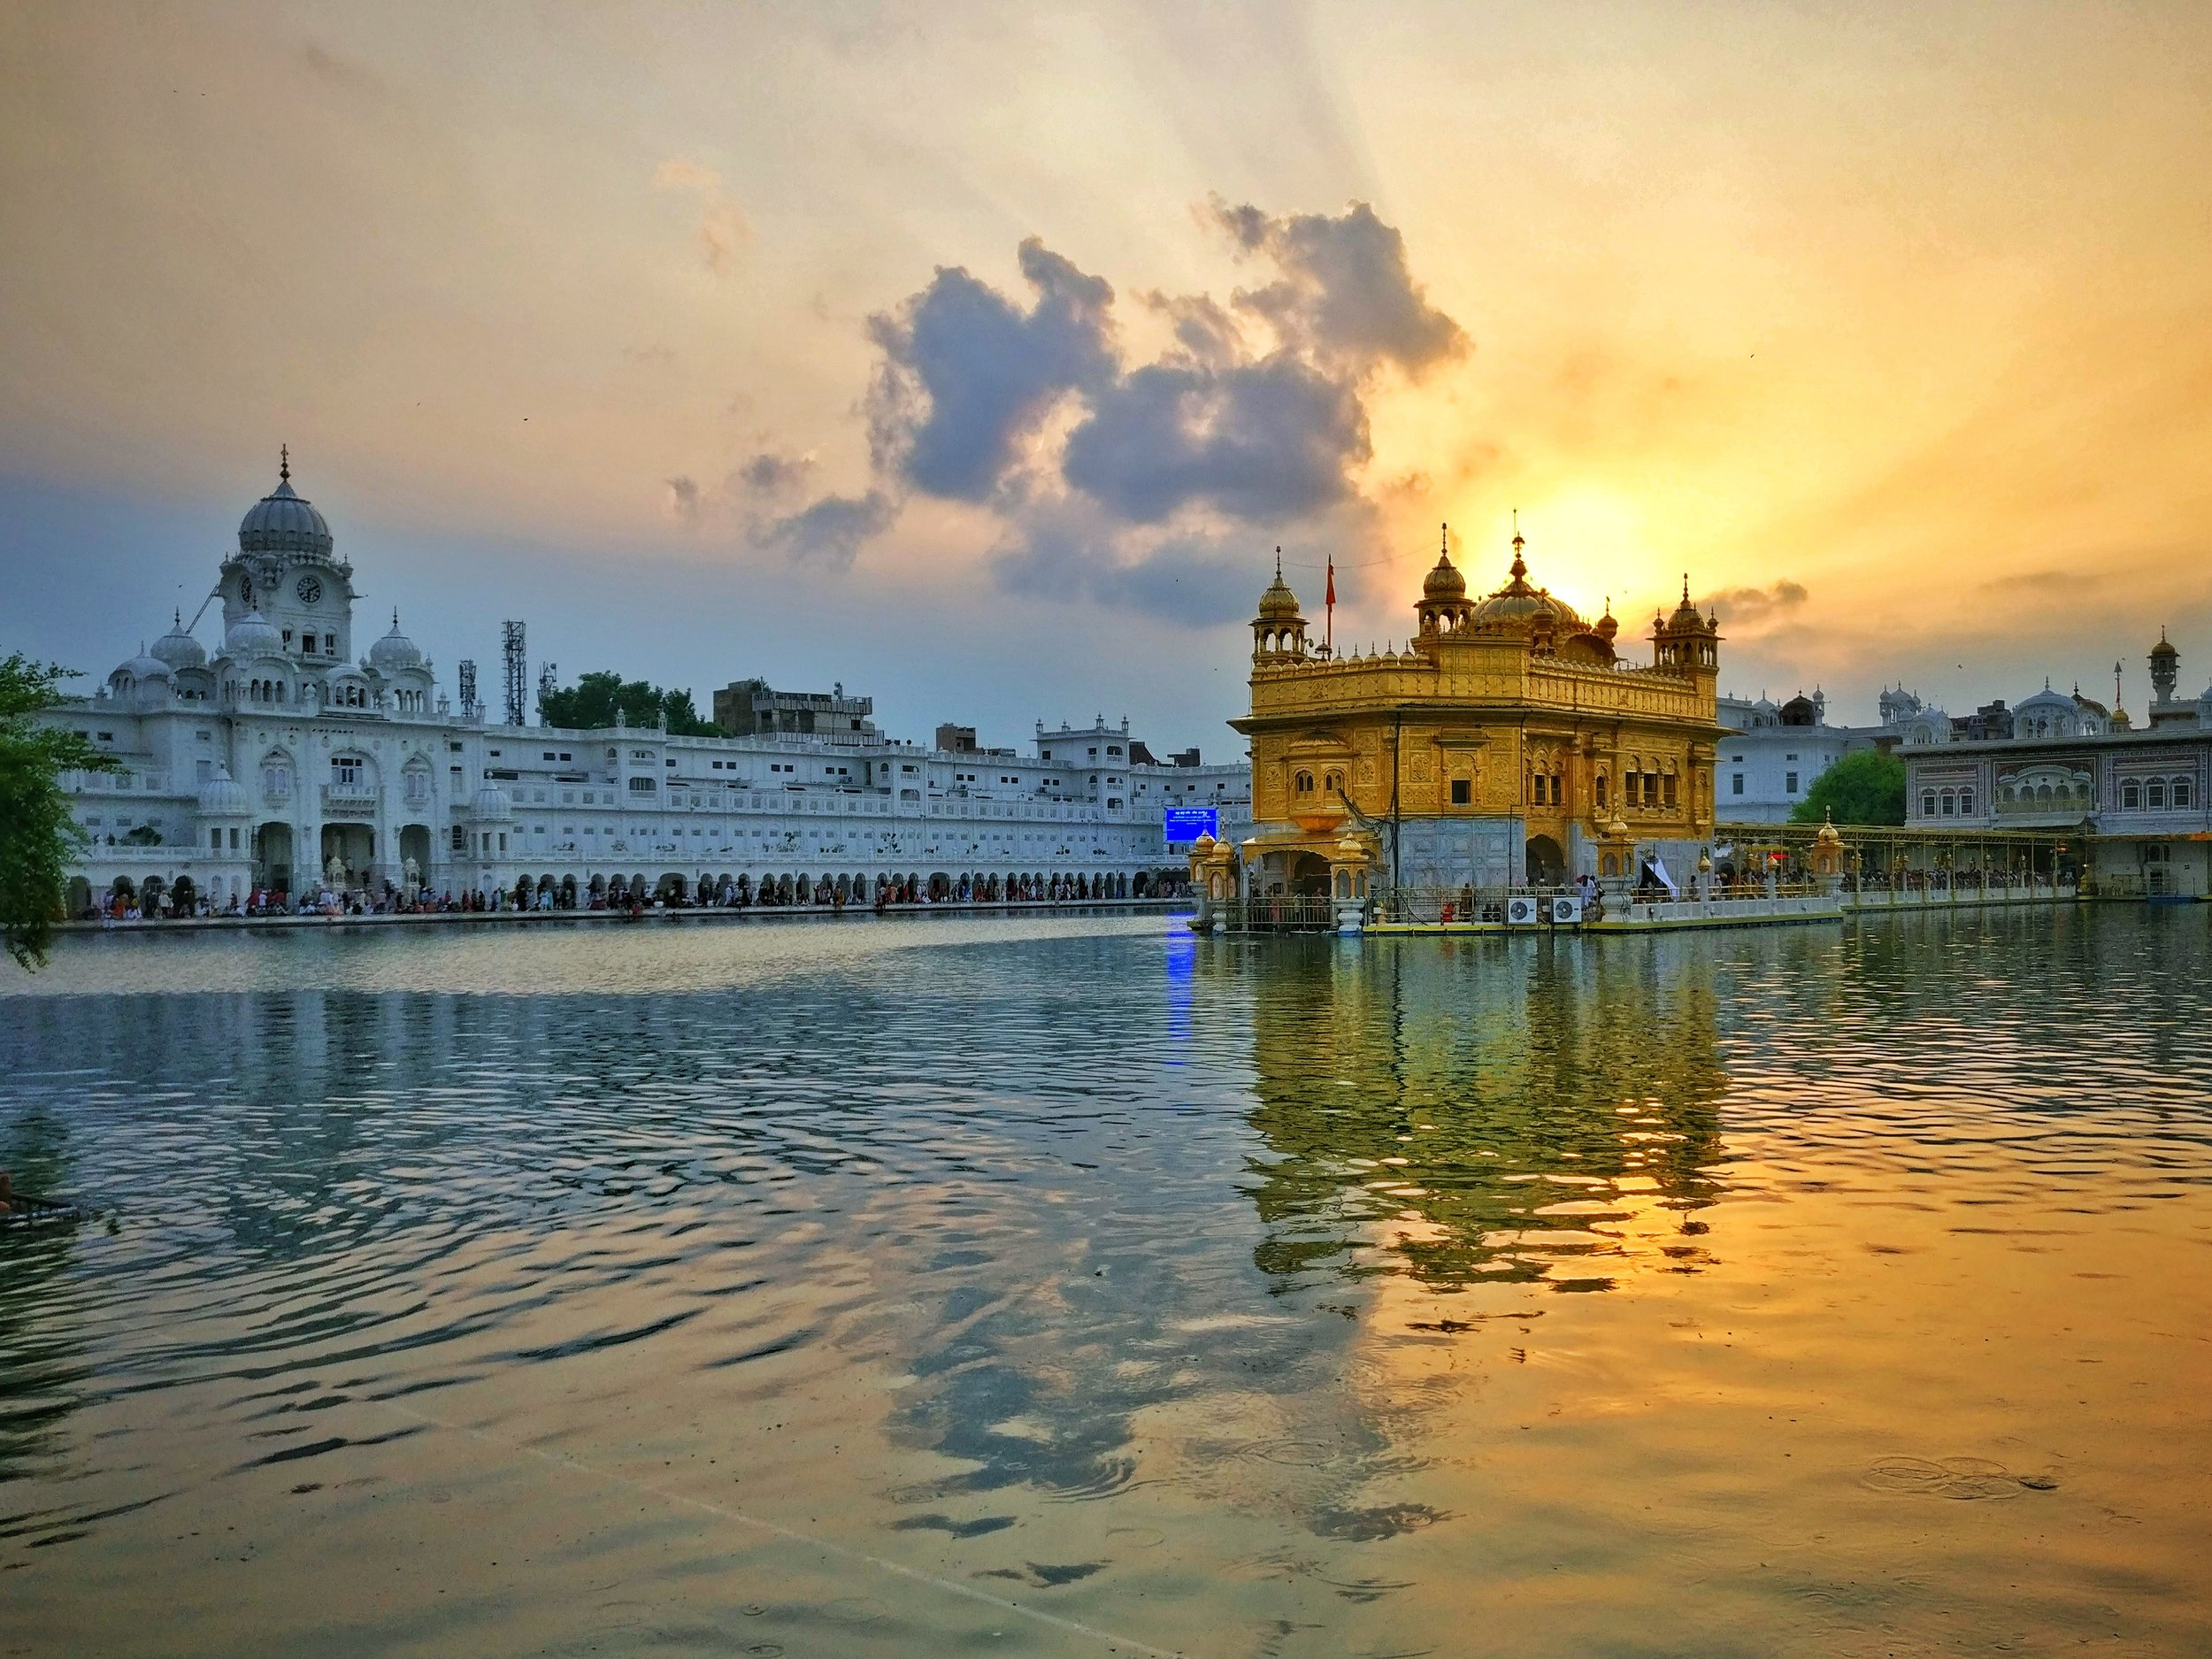 The Golden Temple by sunset